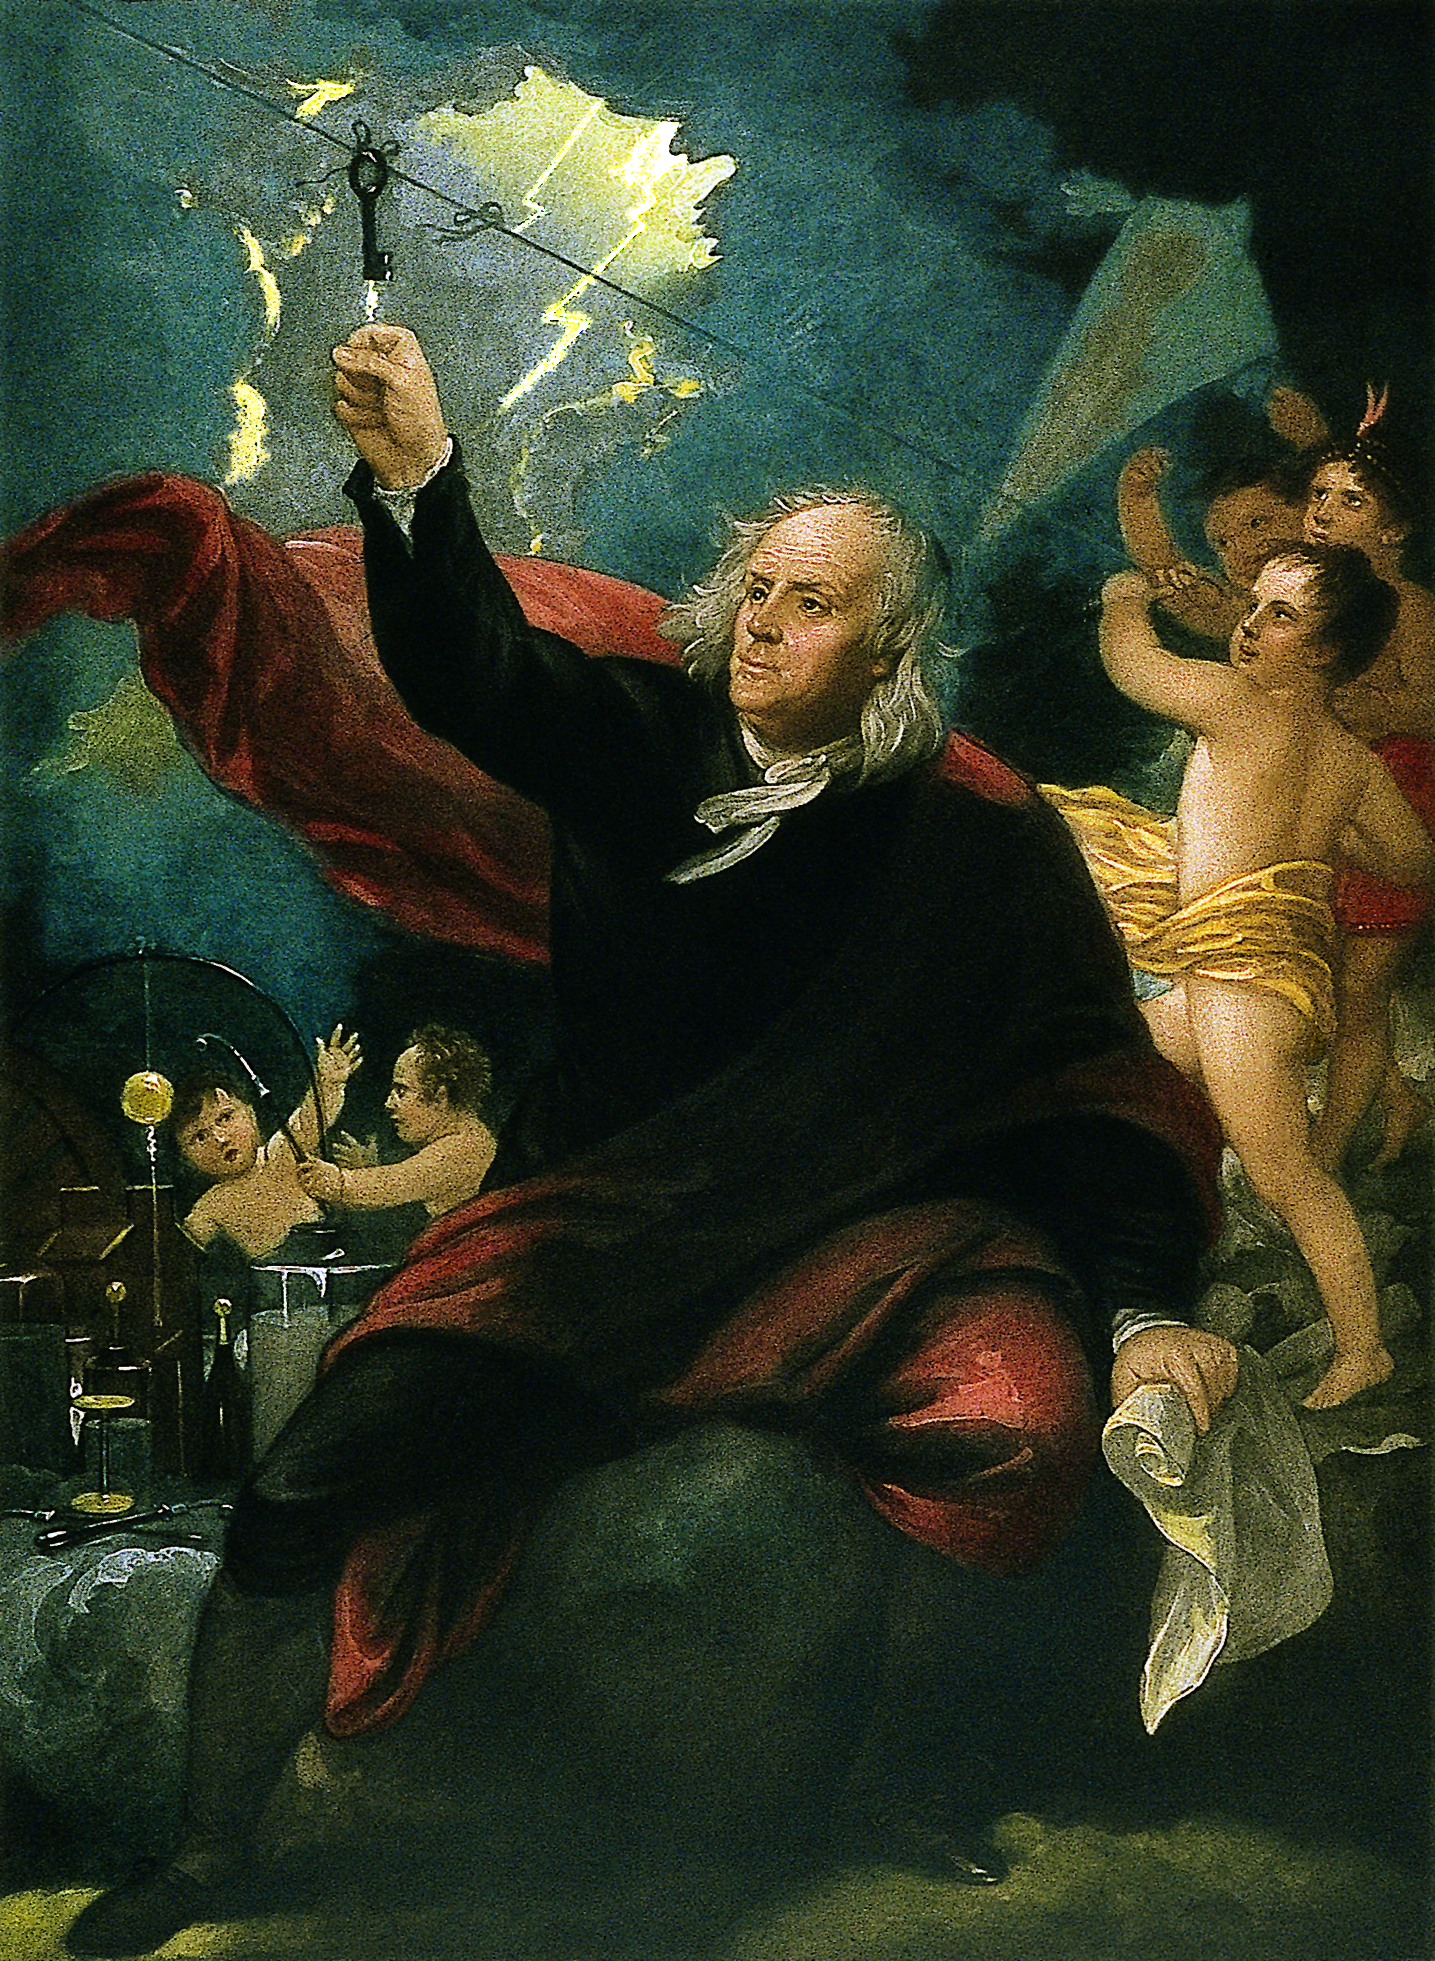 """Benjamin Franklin Drawing Electricity from the Sky"" by Benjamin West"